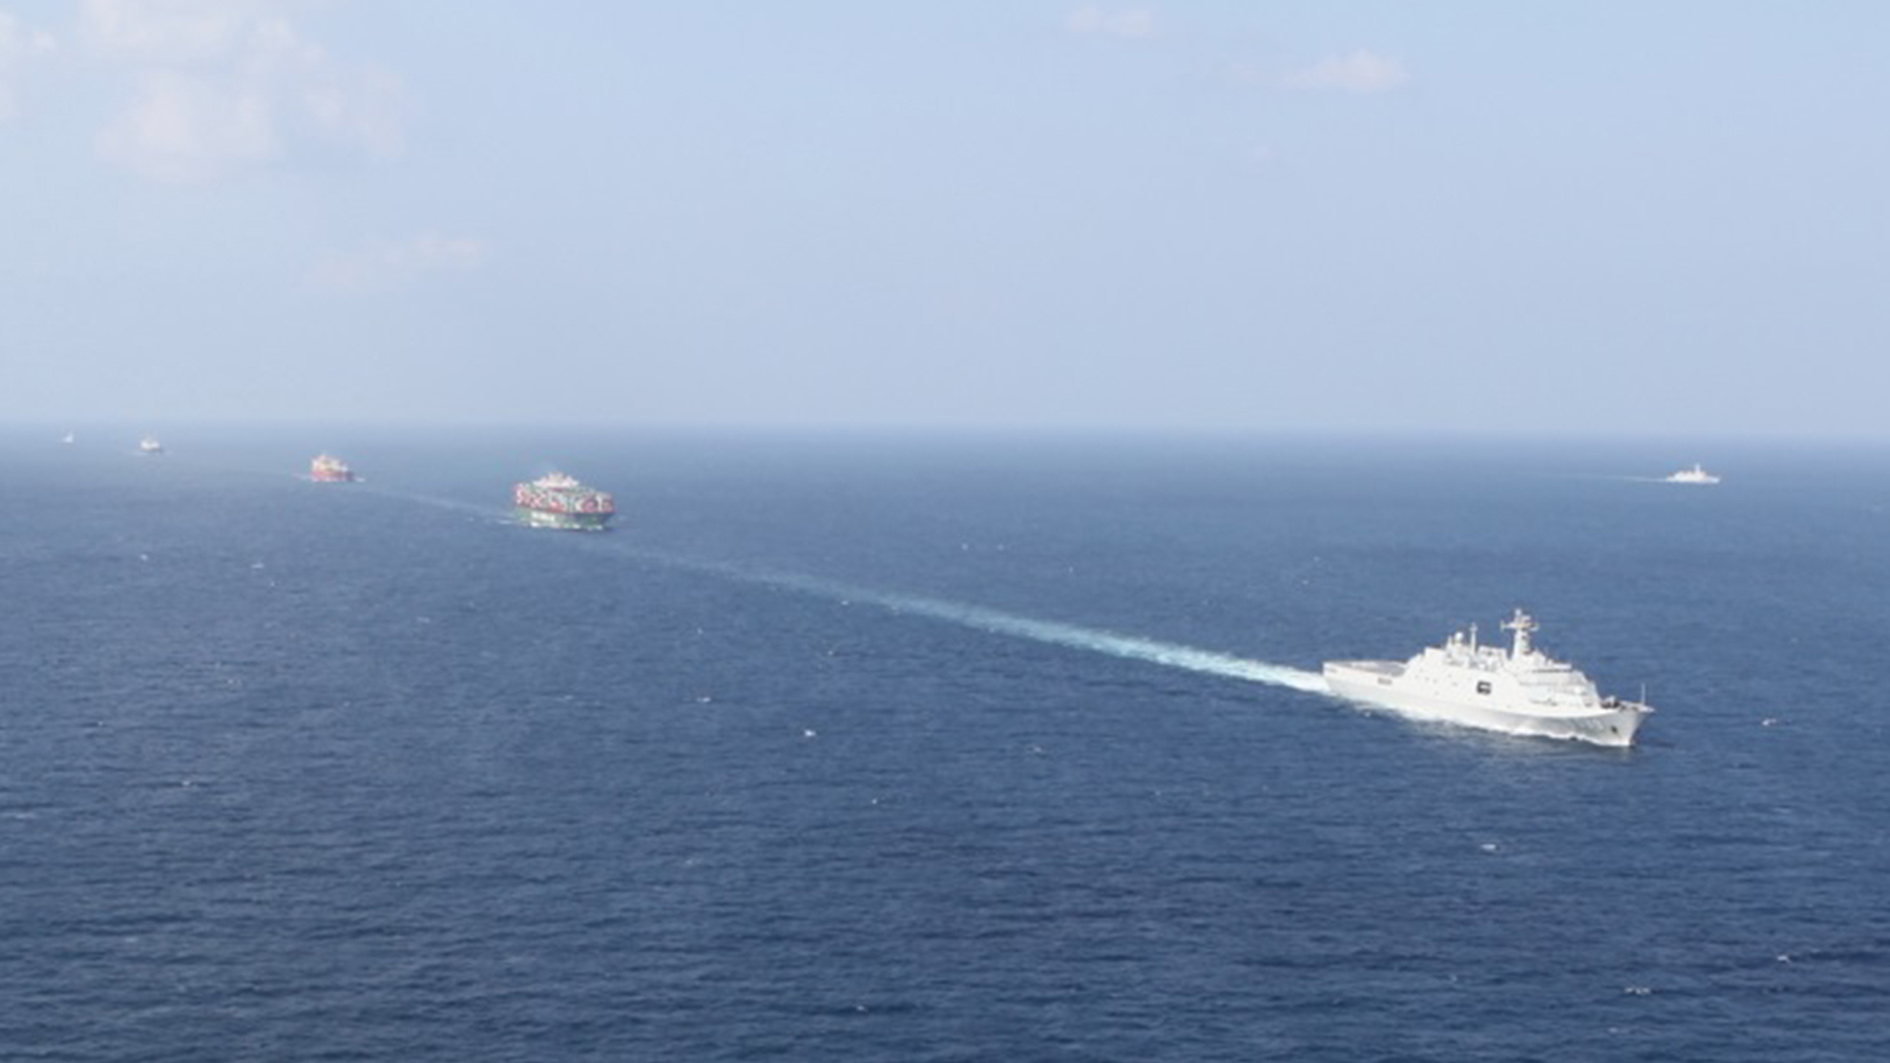 China's Naval Escort Mission Builds Up PLA's International